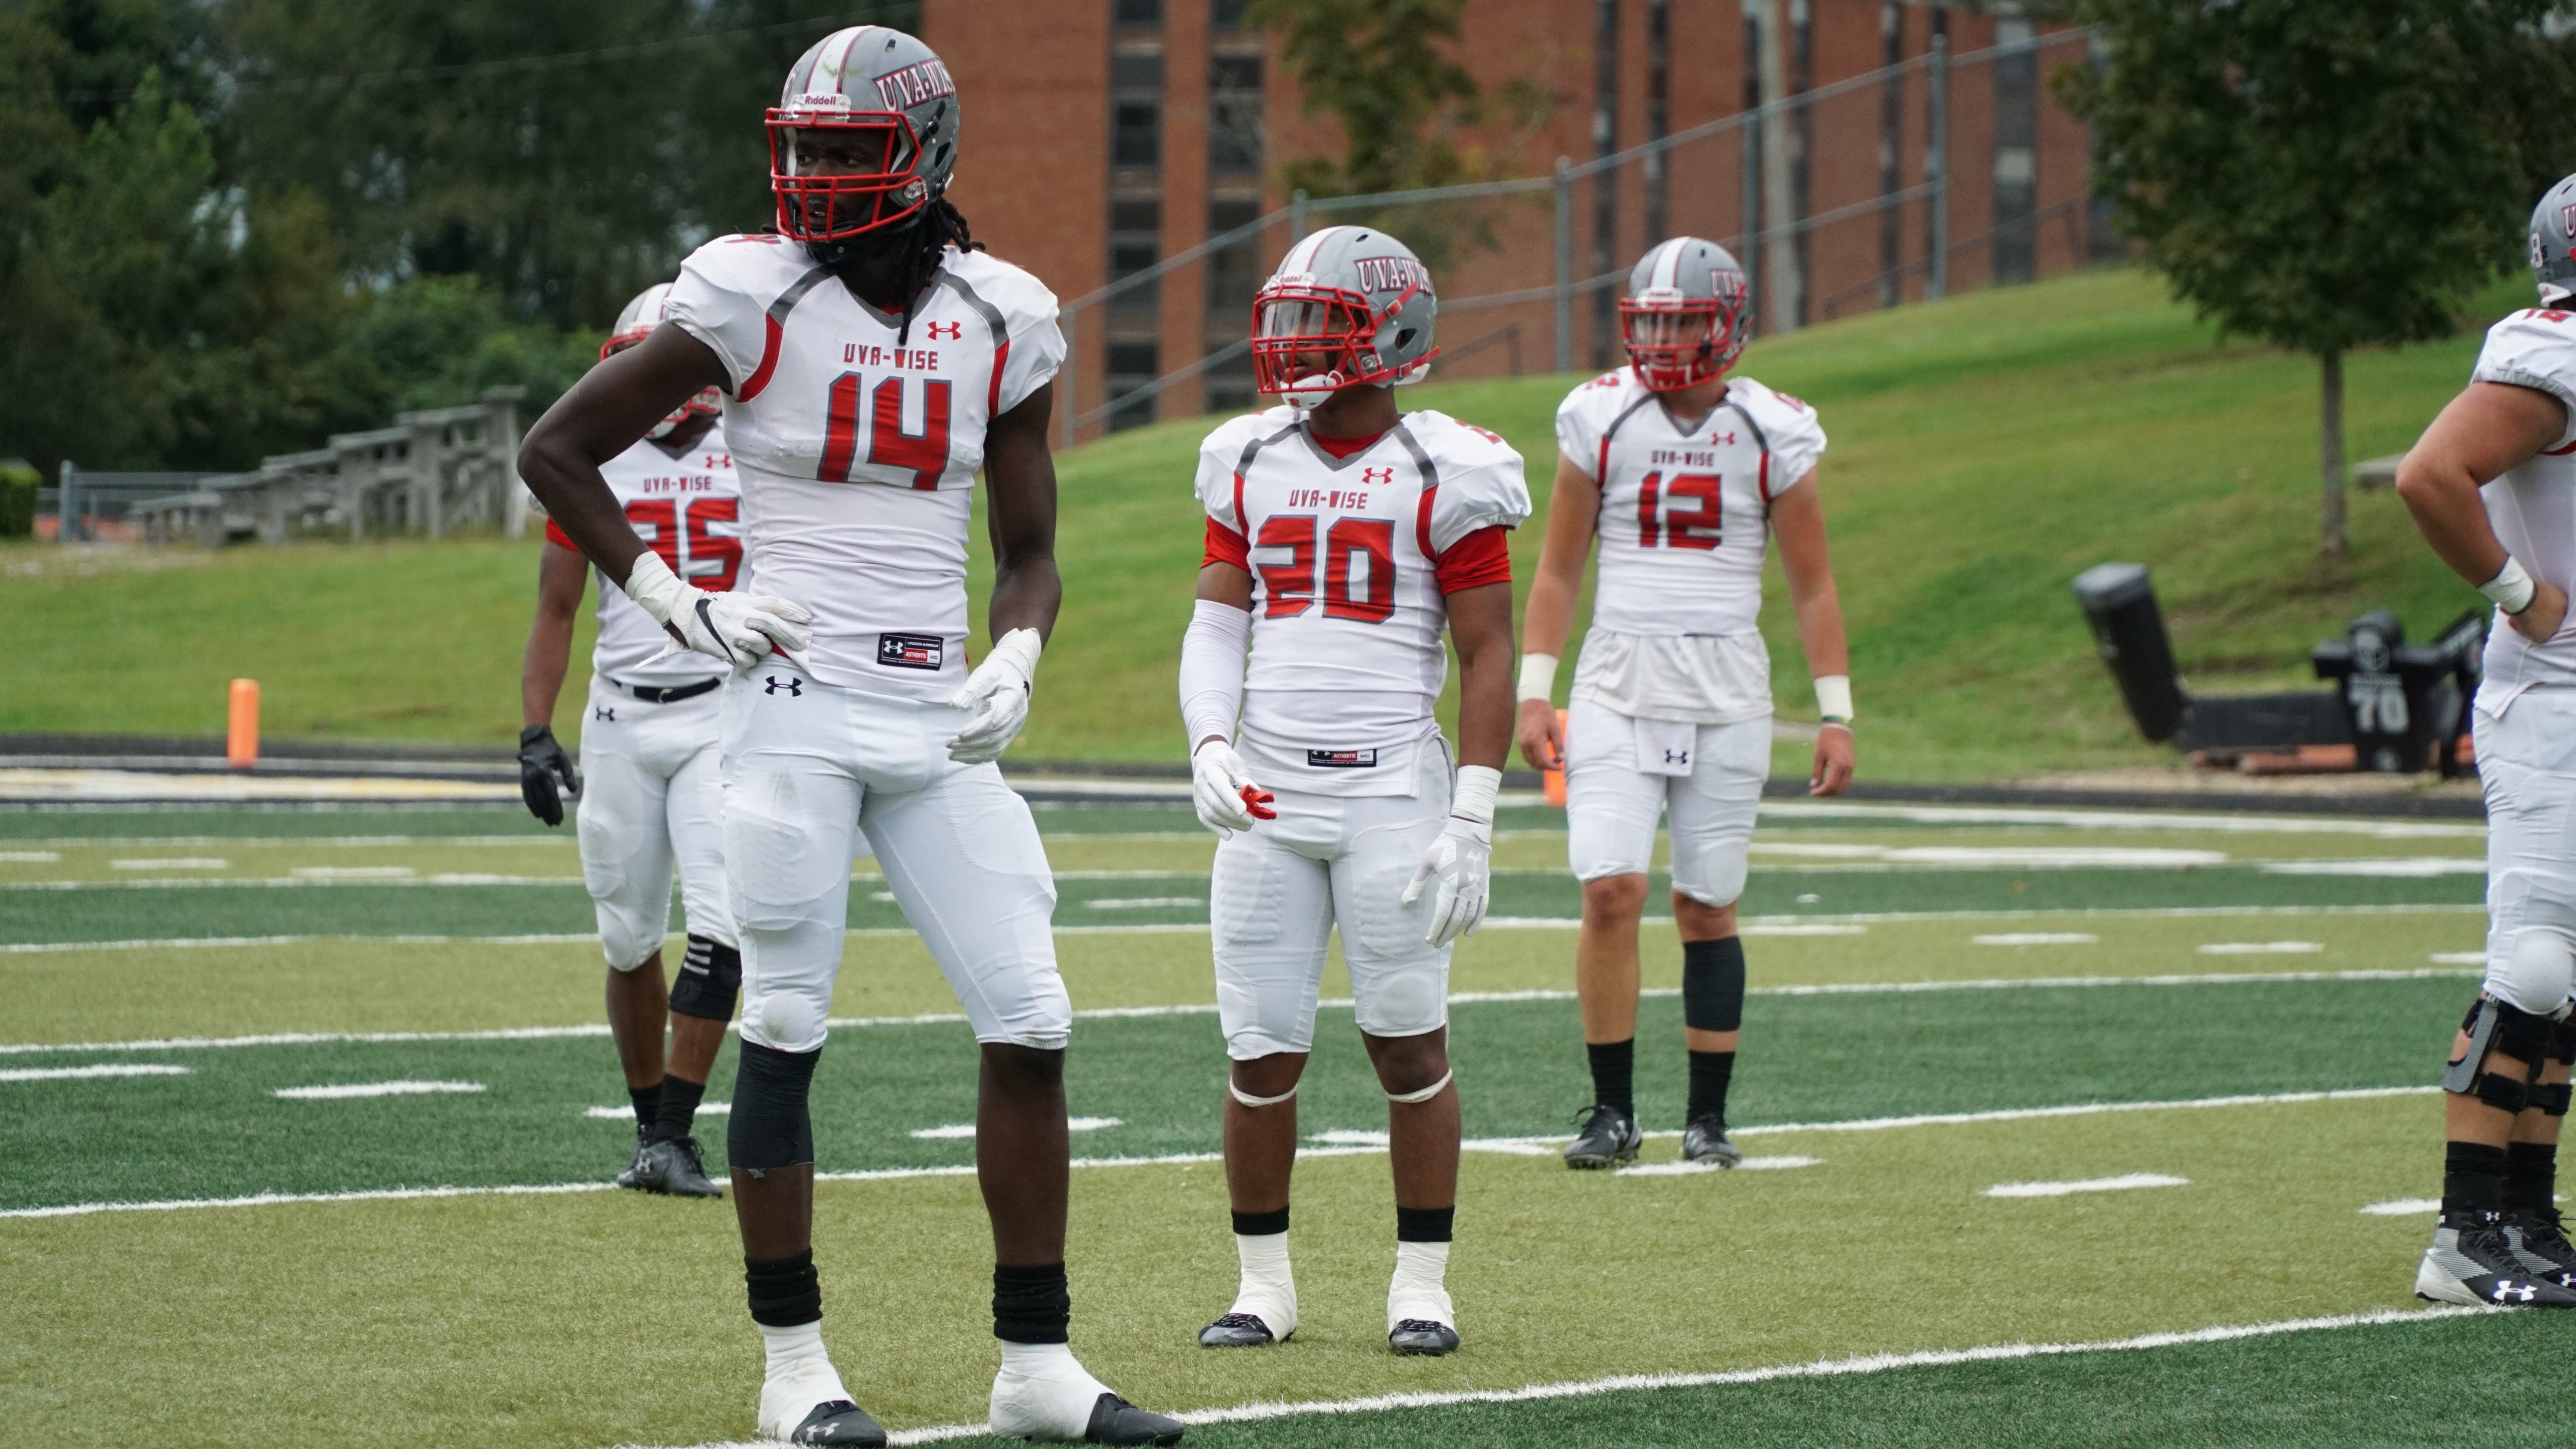 UVA-Wise wide receiver Kaian Duverger